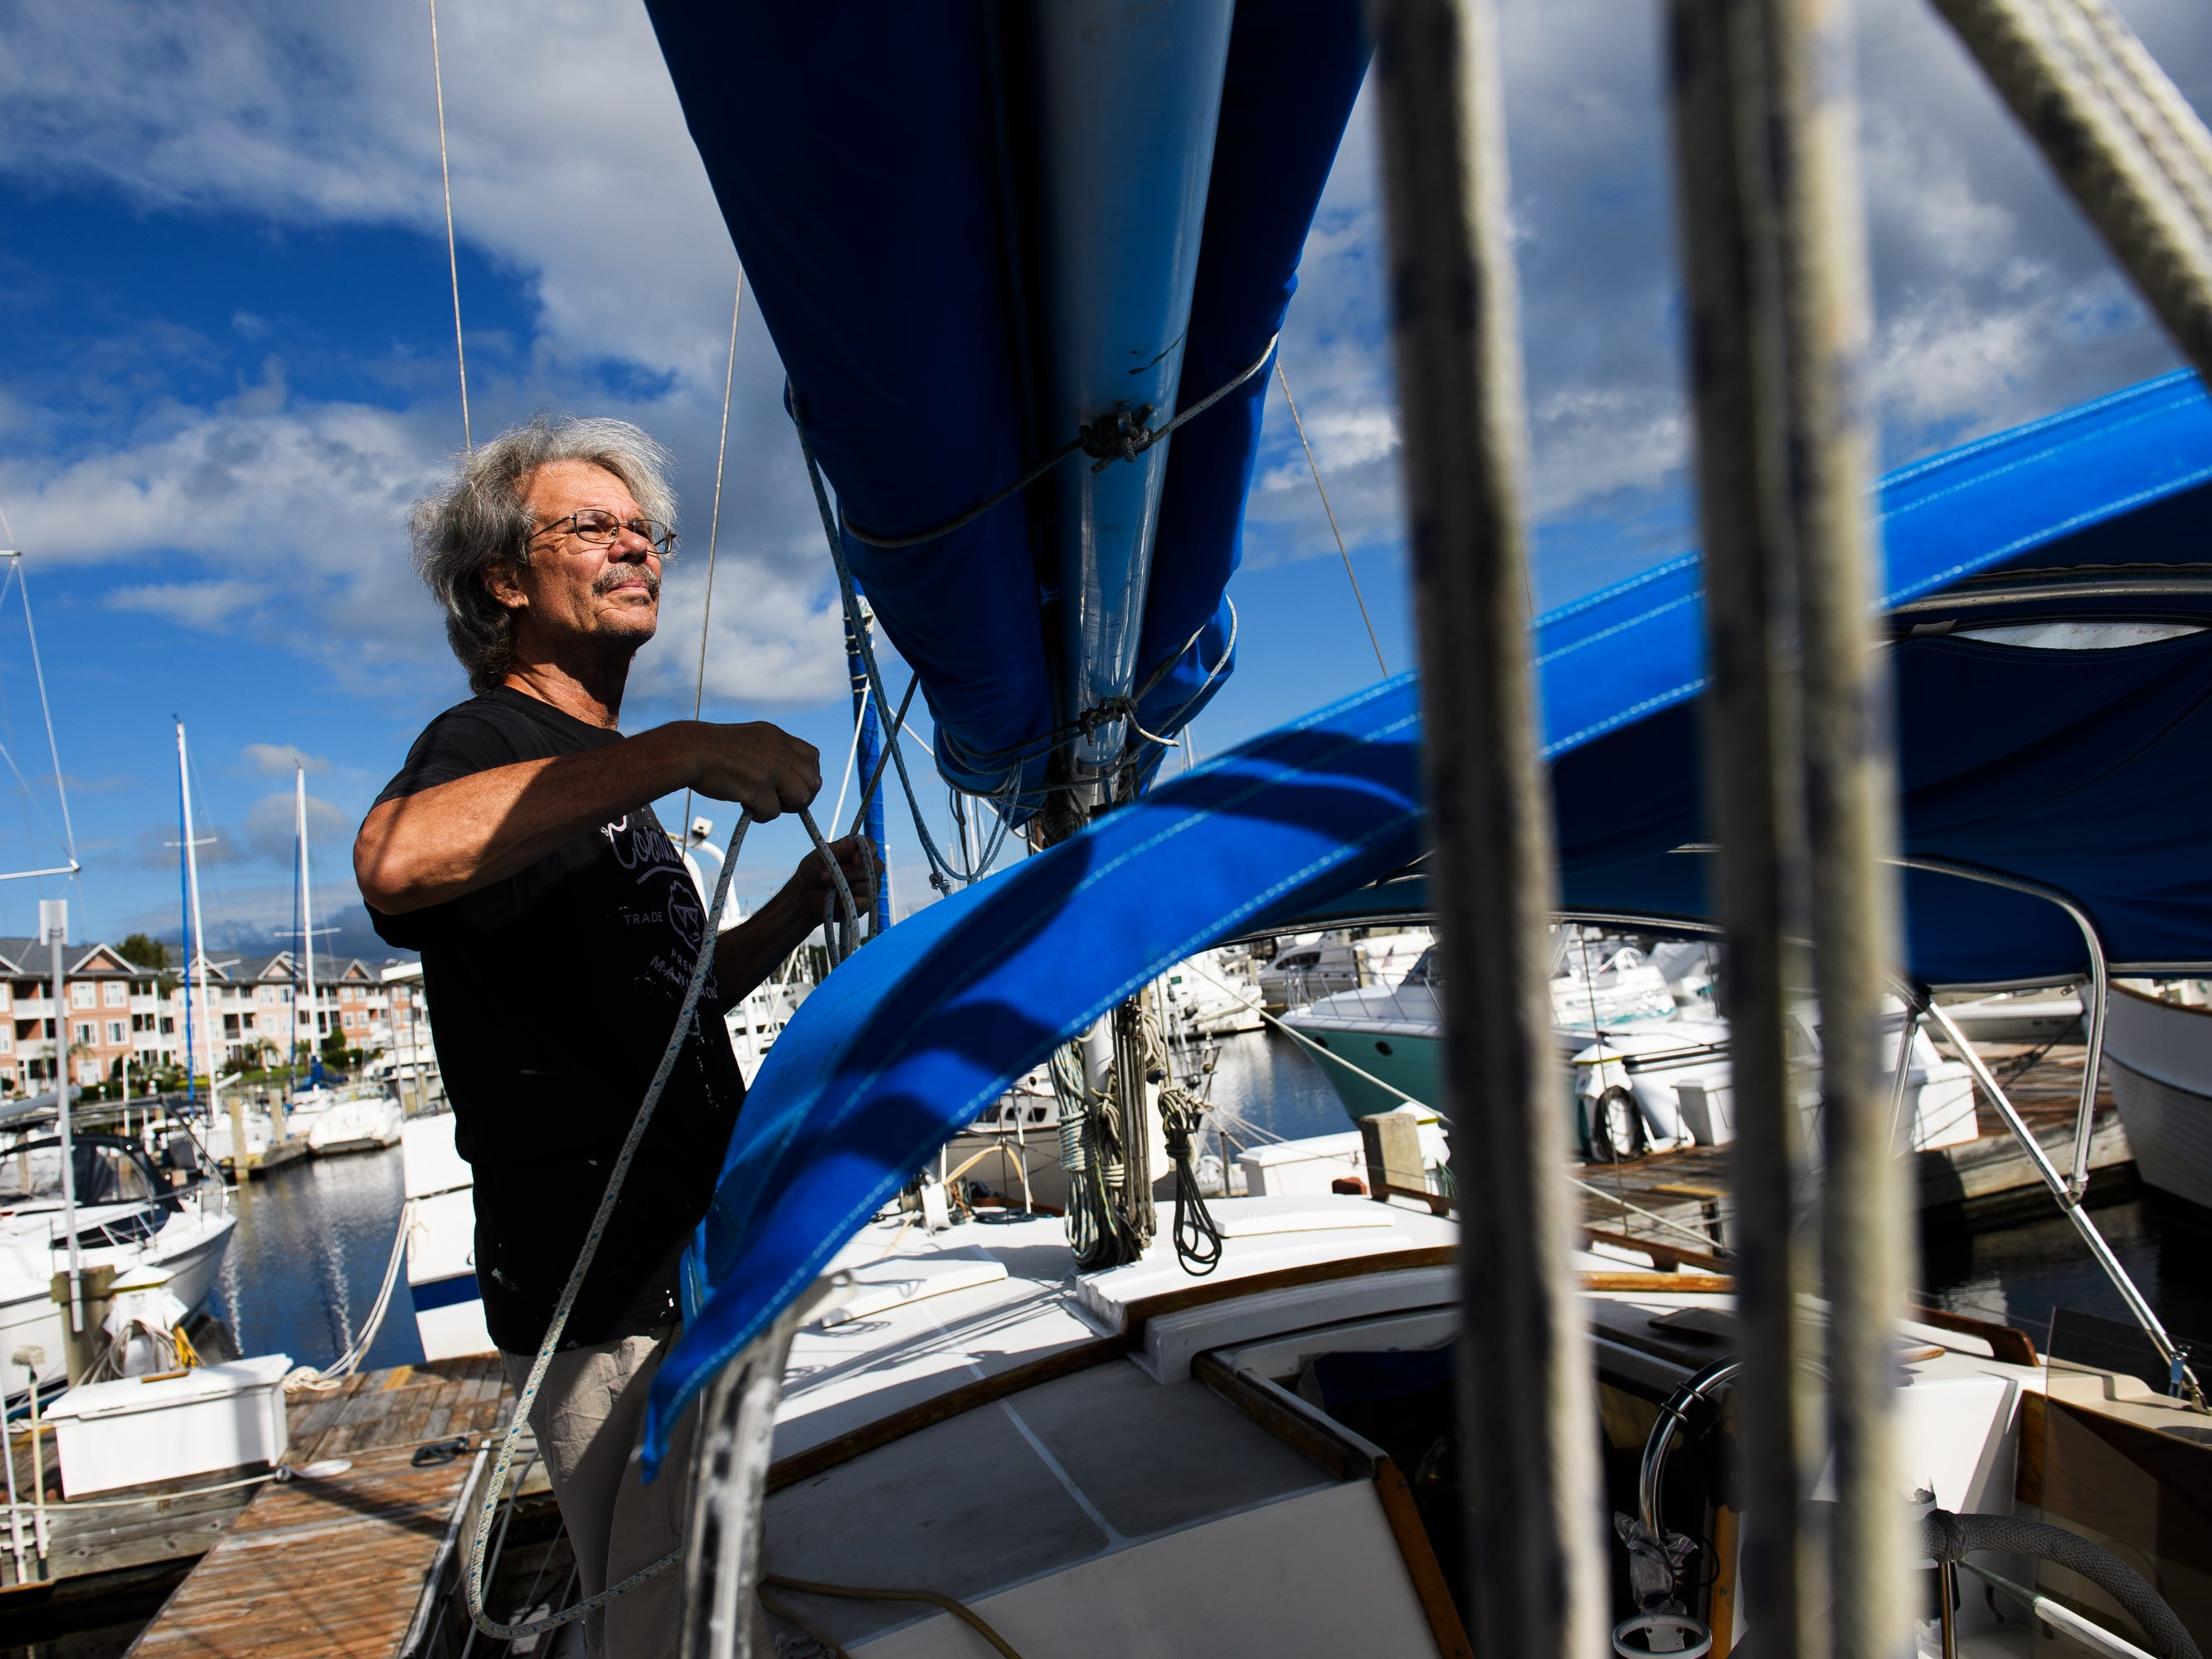 Steve Forsythe ties down the sails of his boat as he prepares for Hurricane Florence on Wednesday, Sept. 12, 2018 at Lightkeepers Marina in North Myrtle Beach. Steve and his wife Jill will be going back home to Akron, Ohio after they're done securing their boat.